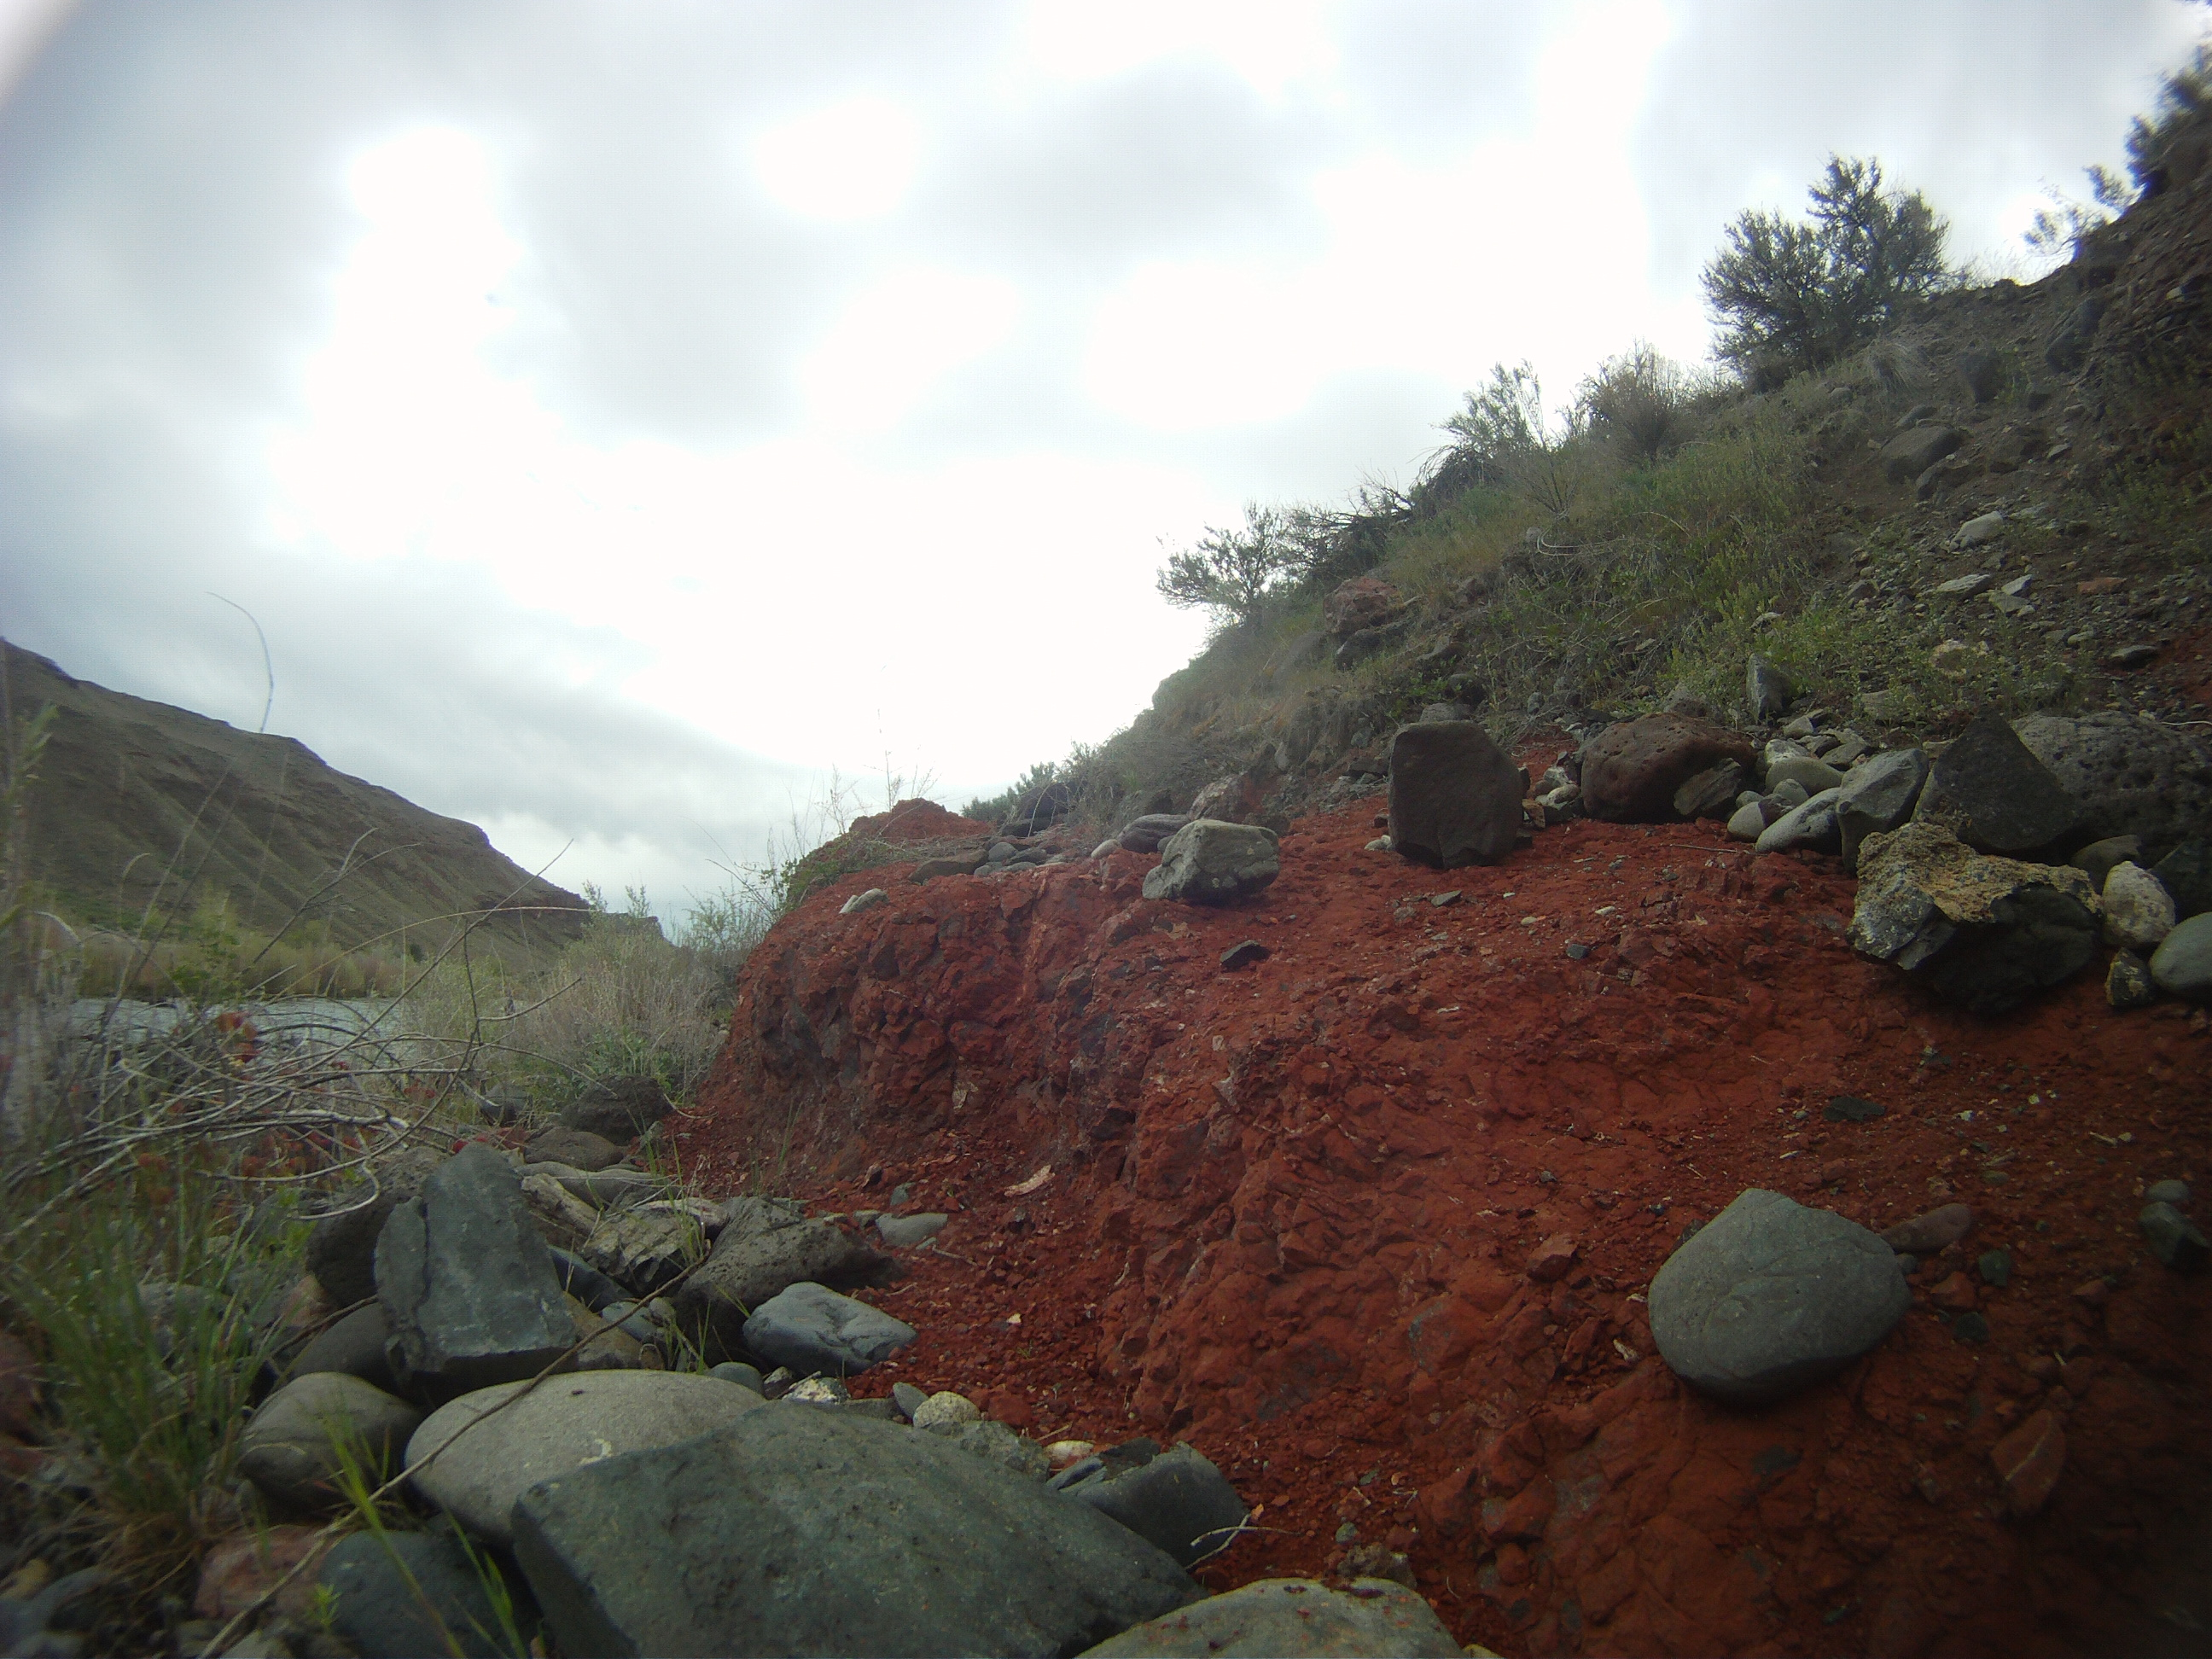 The rocky terrain had crazy colors.